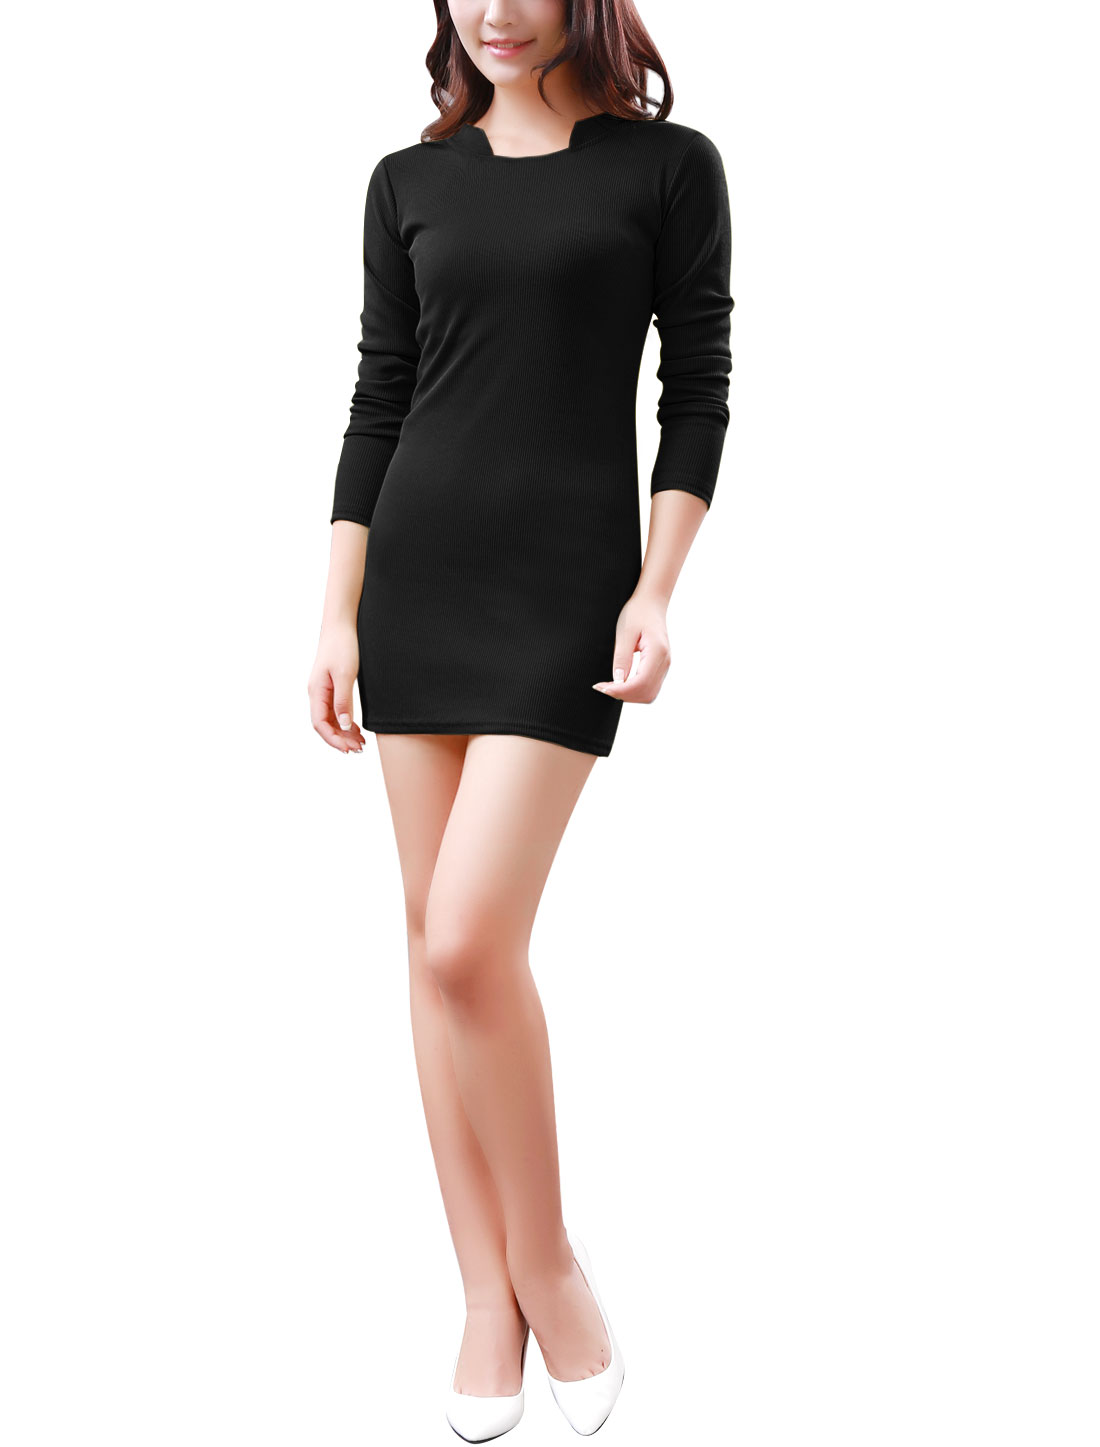 Lady Stand Collar Long Sleeves Ribbed Trim Sheathy Knit Dress Black S